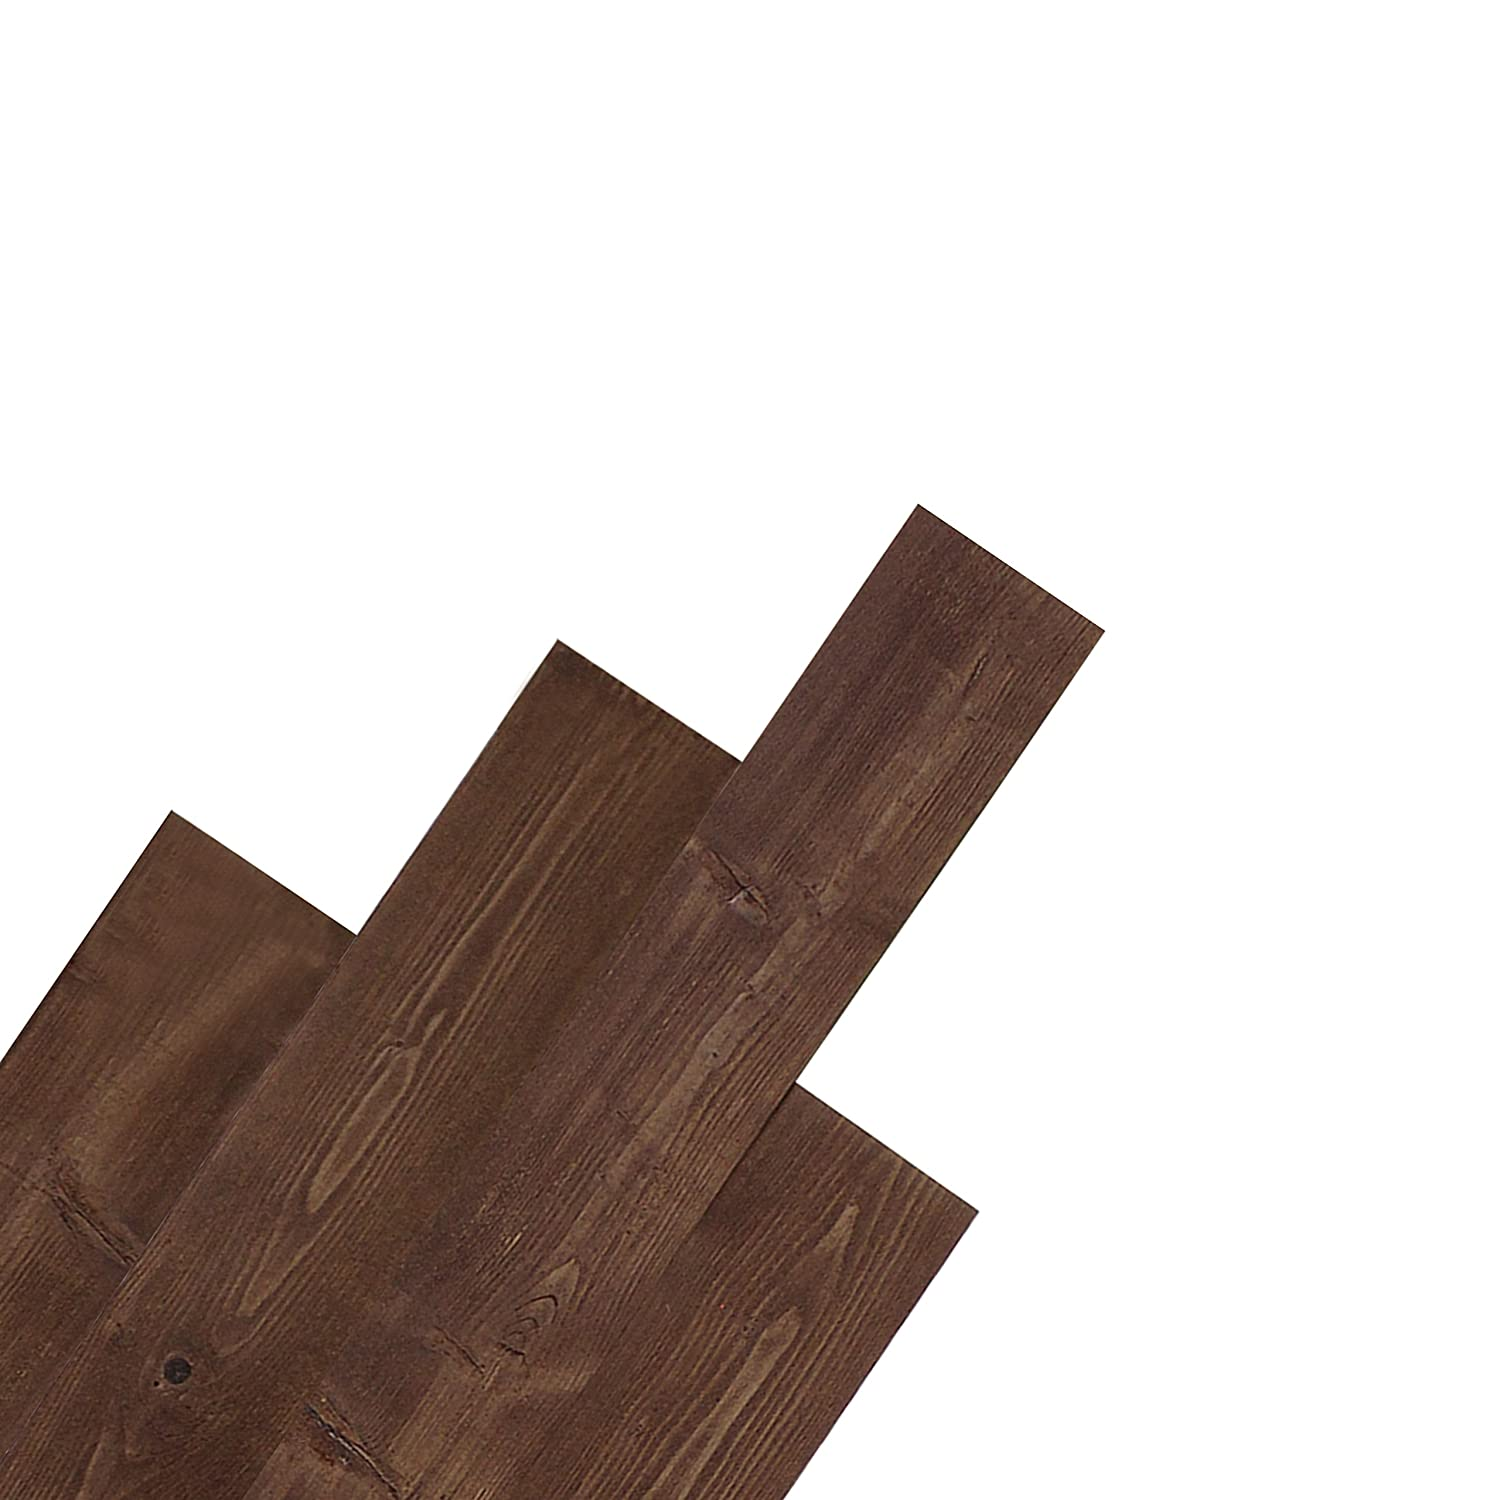 DIY Peel and Stick Reclaimed Barn Wood Plank Wall Panel 10pcs per Box Cover 16sqft (Mix Brown) Kingsman Hardware